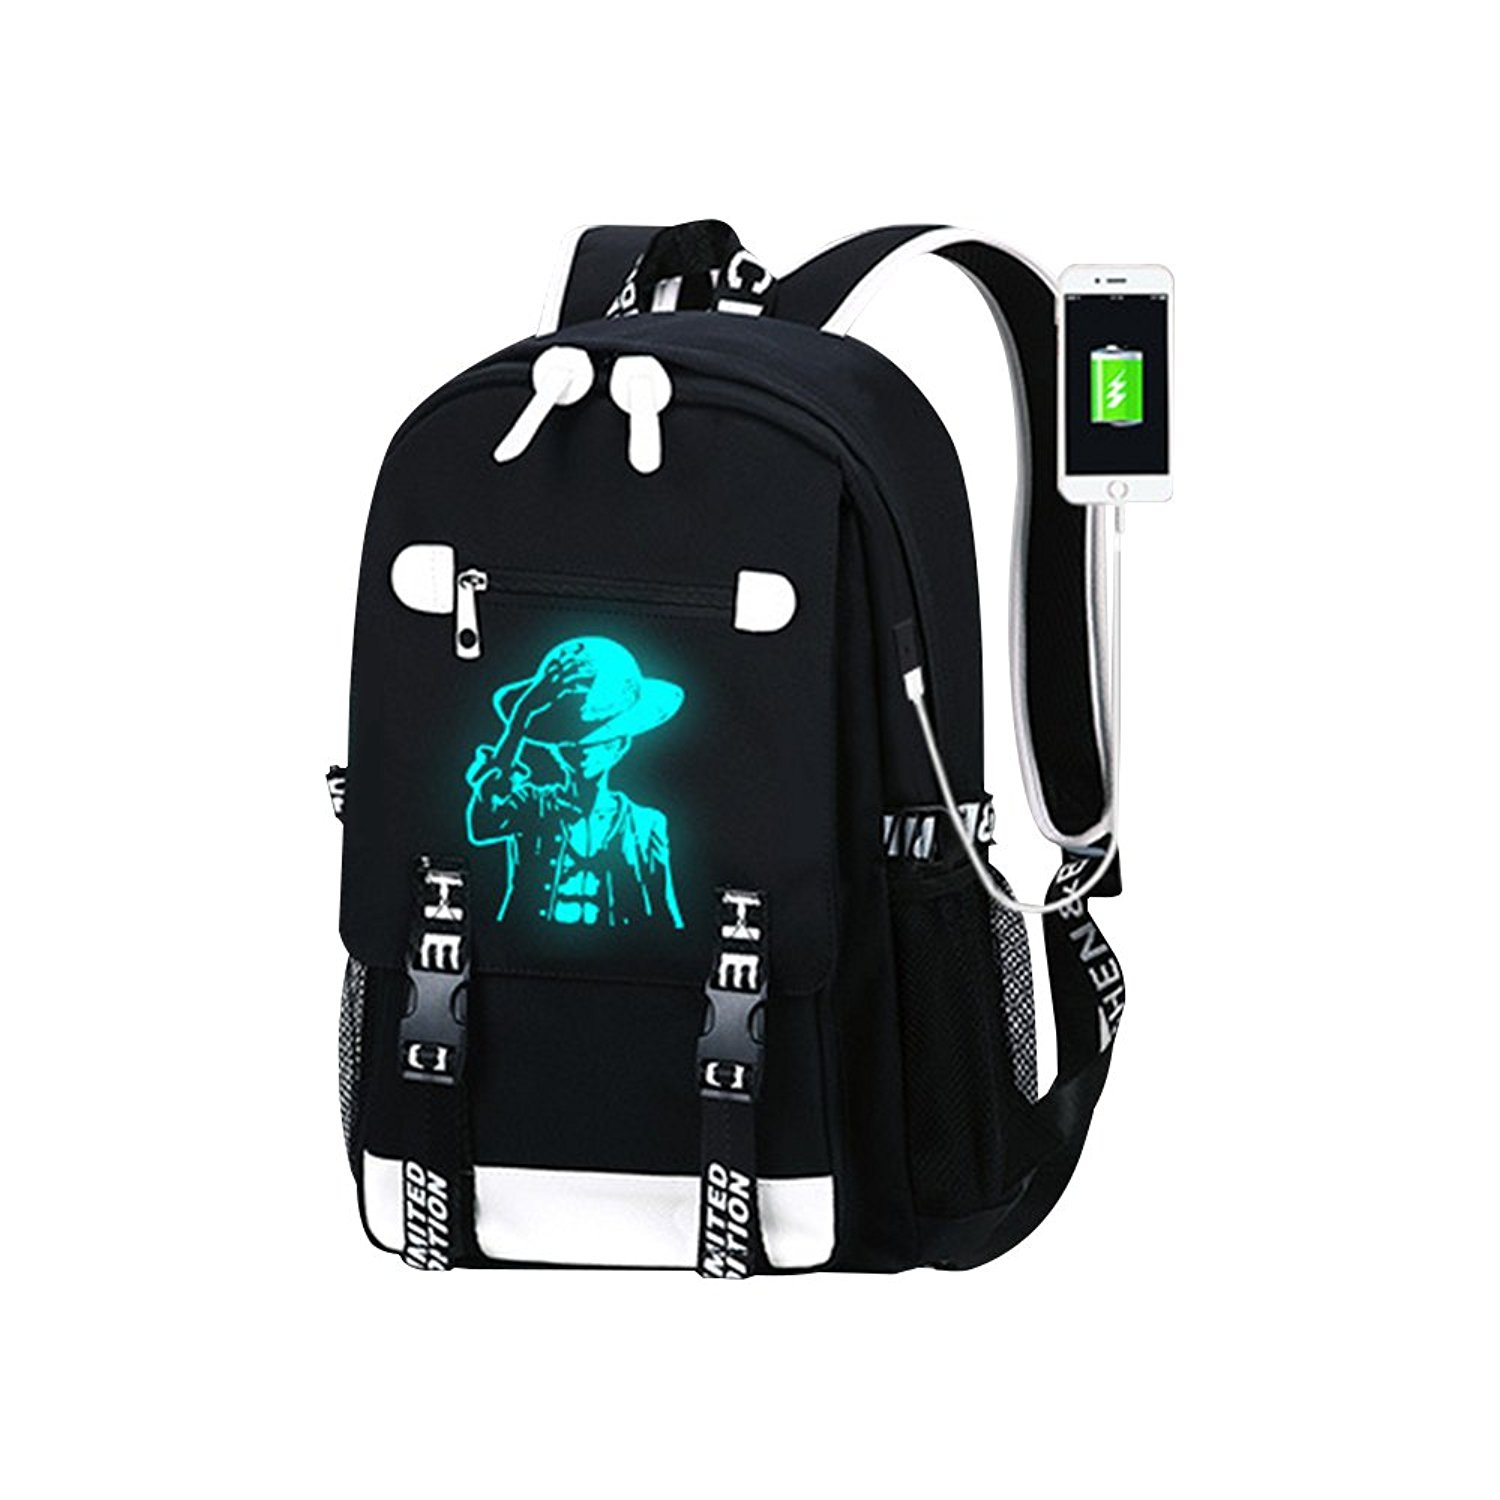 e6d9274bb58 Get Quotations · Anime Luminous Laptop Backpack,KINOMOTO Business Travel  Backpack with USB Charging Port School Bookbag for